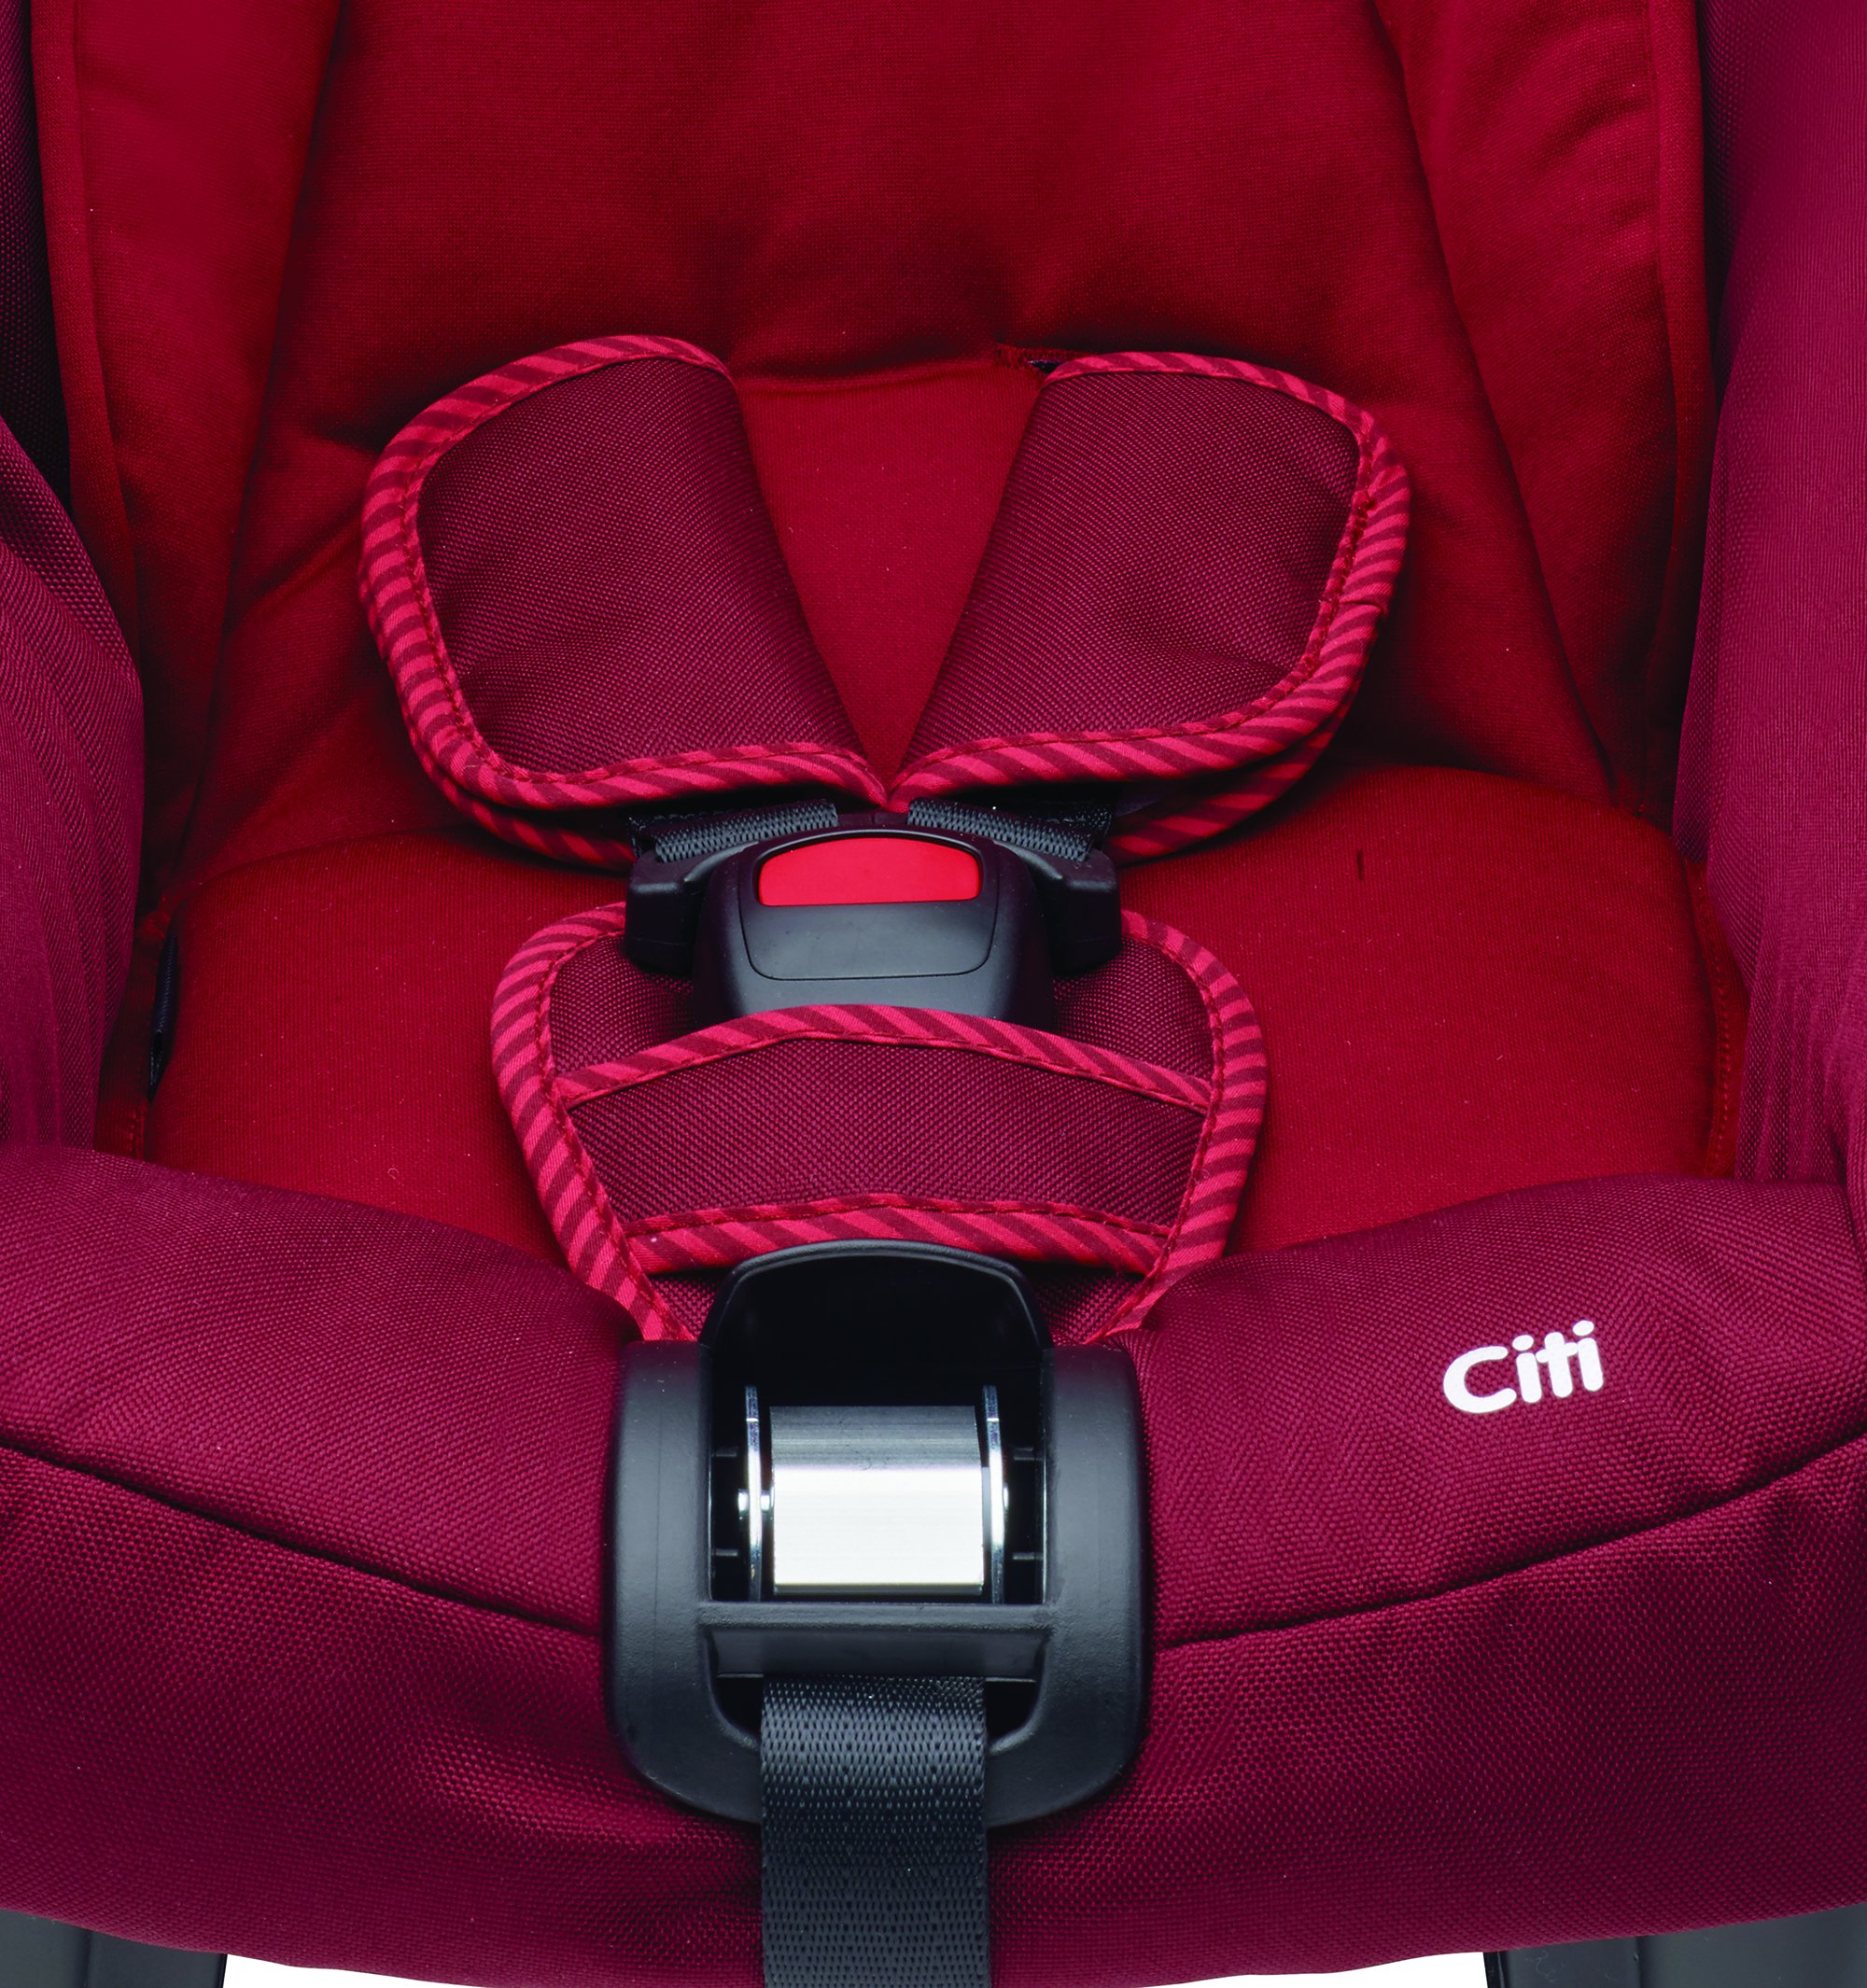 Maxi-Cosi Kinderautositz Citi Robin Red Maxi-Cosi Side protection system, guarantees optimal protection in the event of a side impact Lightweight, light weight and ergonomically shaped safety bar for use as carrying handle Practical travel system 8